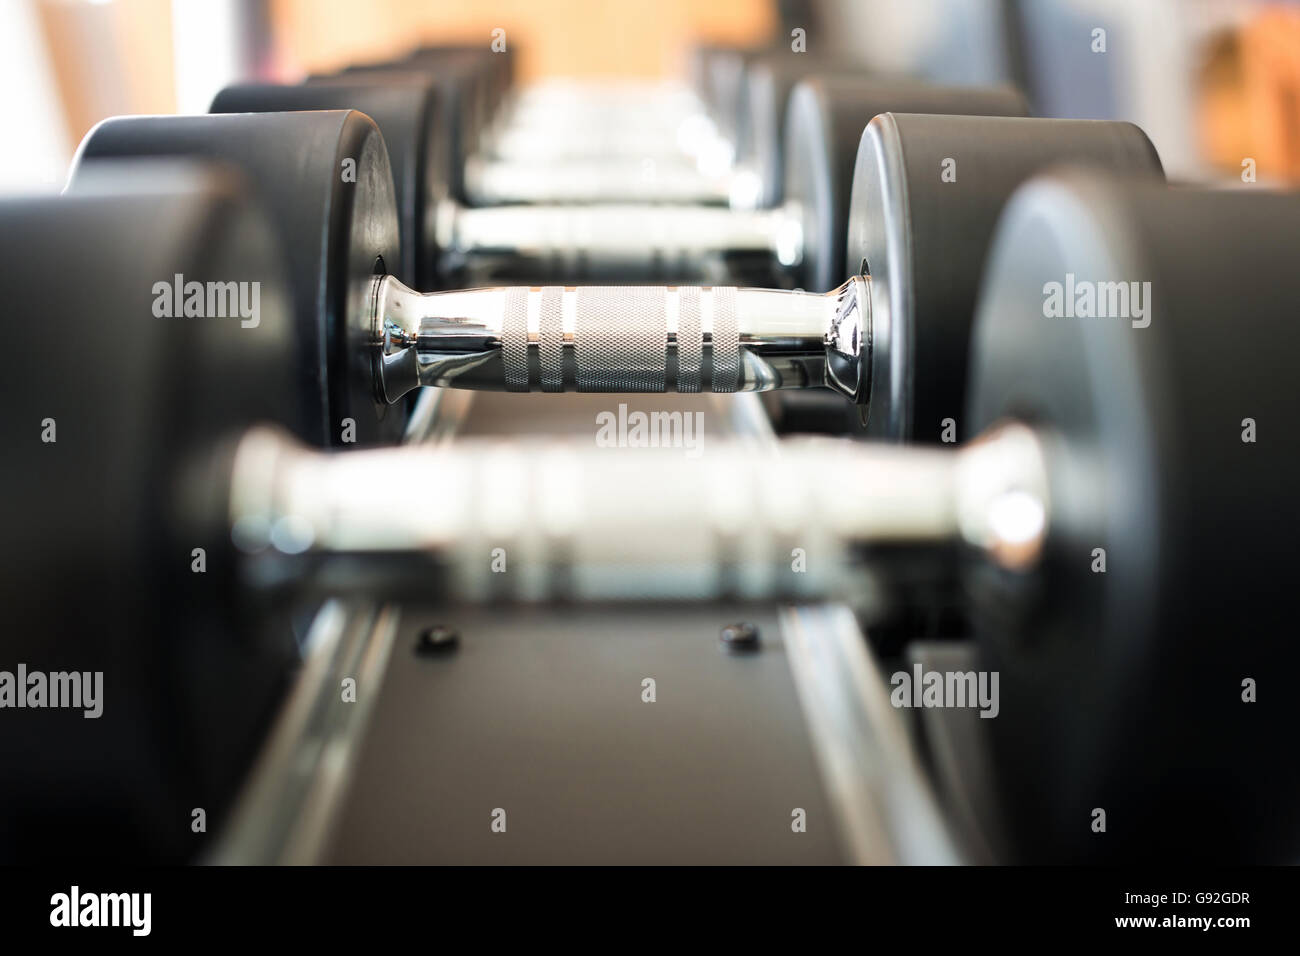 Dumbbell in fitness club - Stock Image